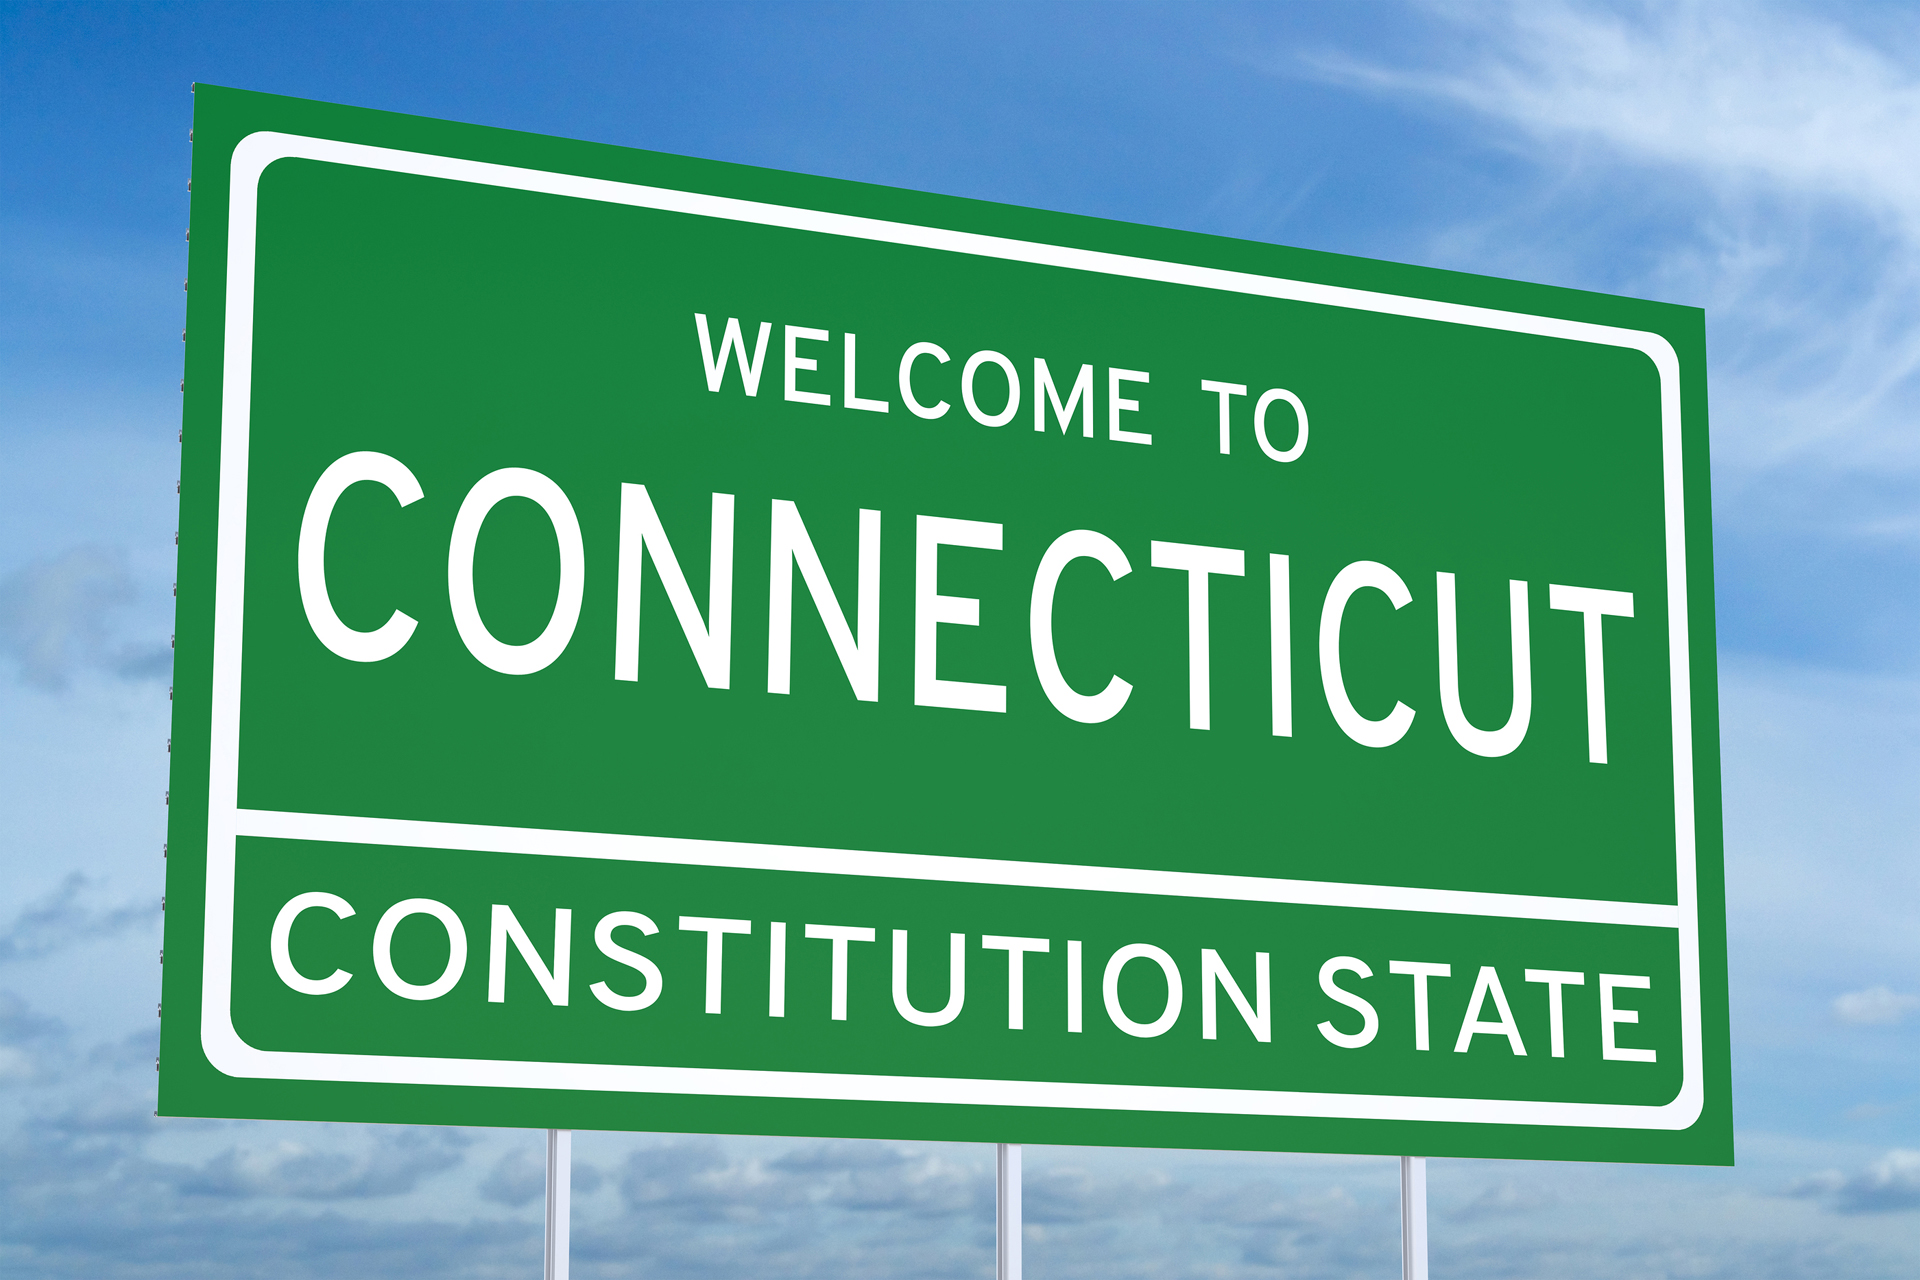 Welcome to Connecticut sign.jpg